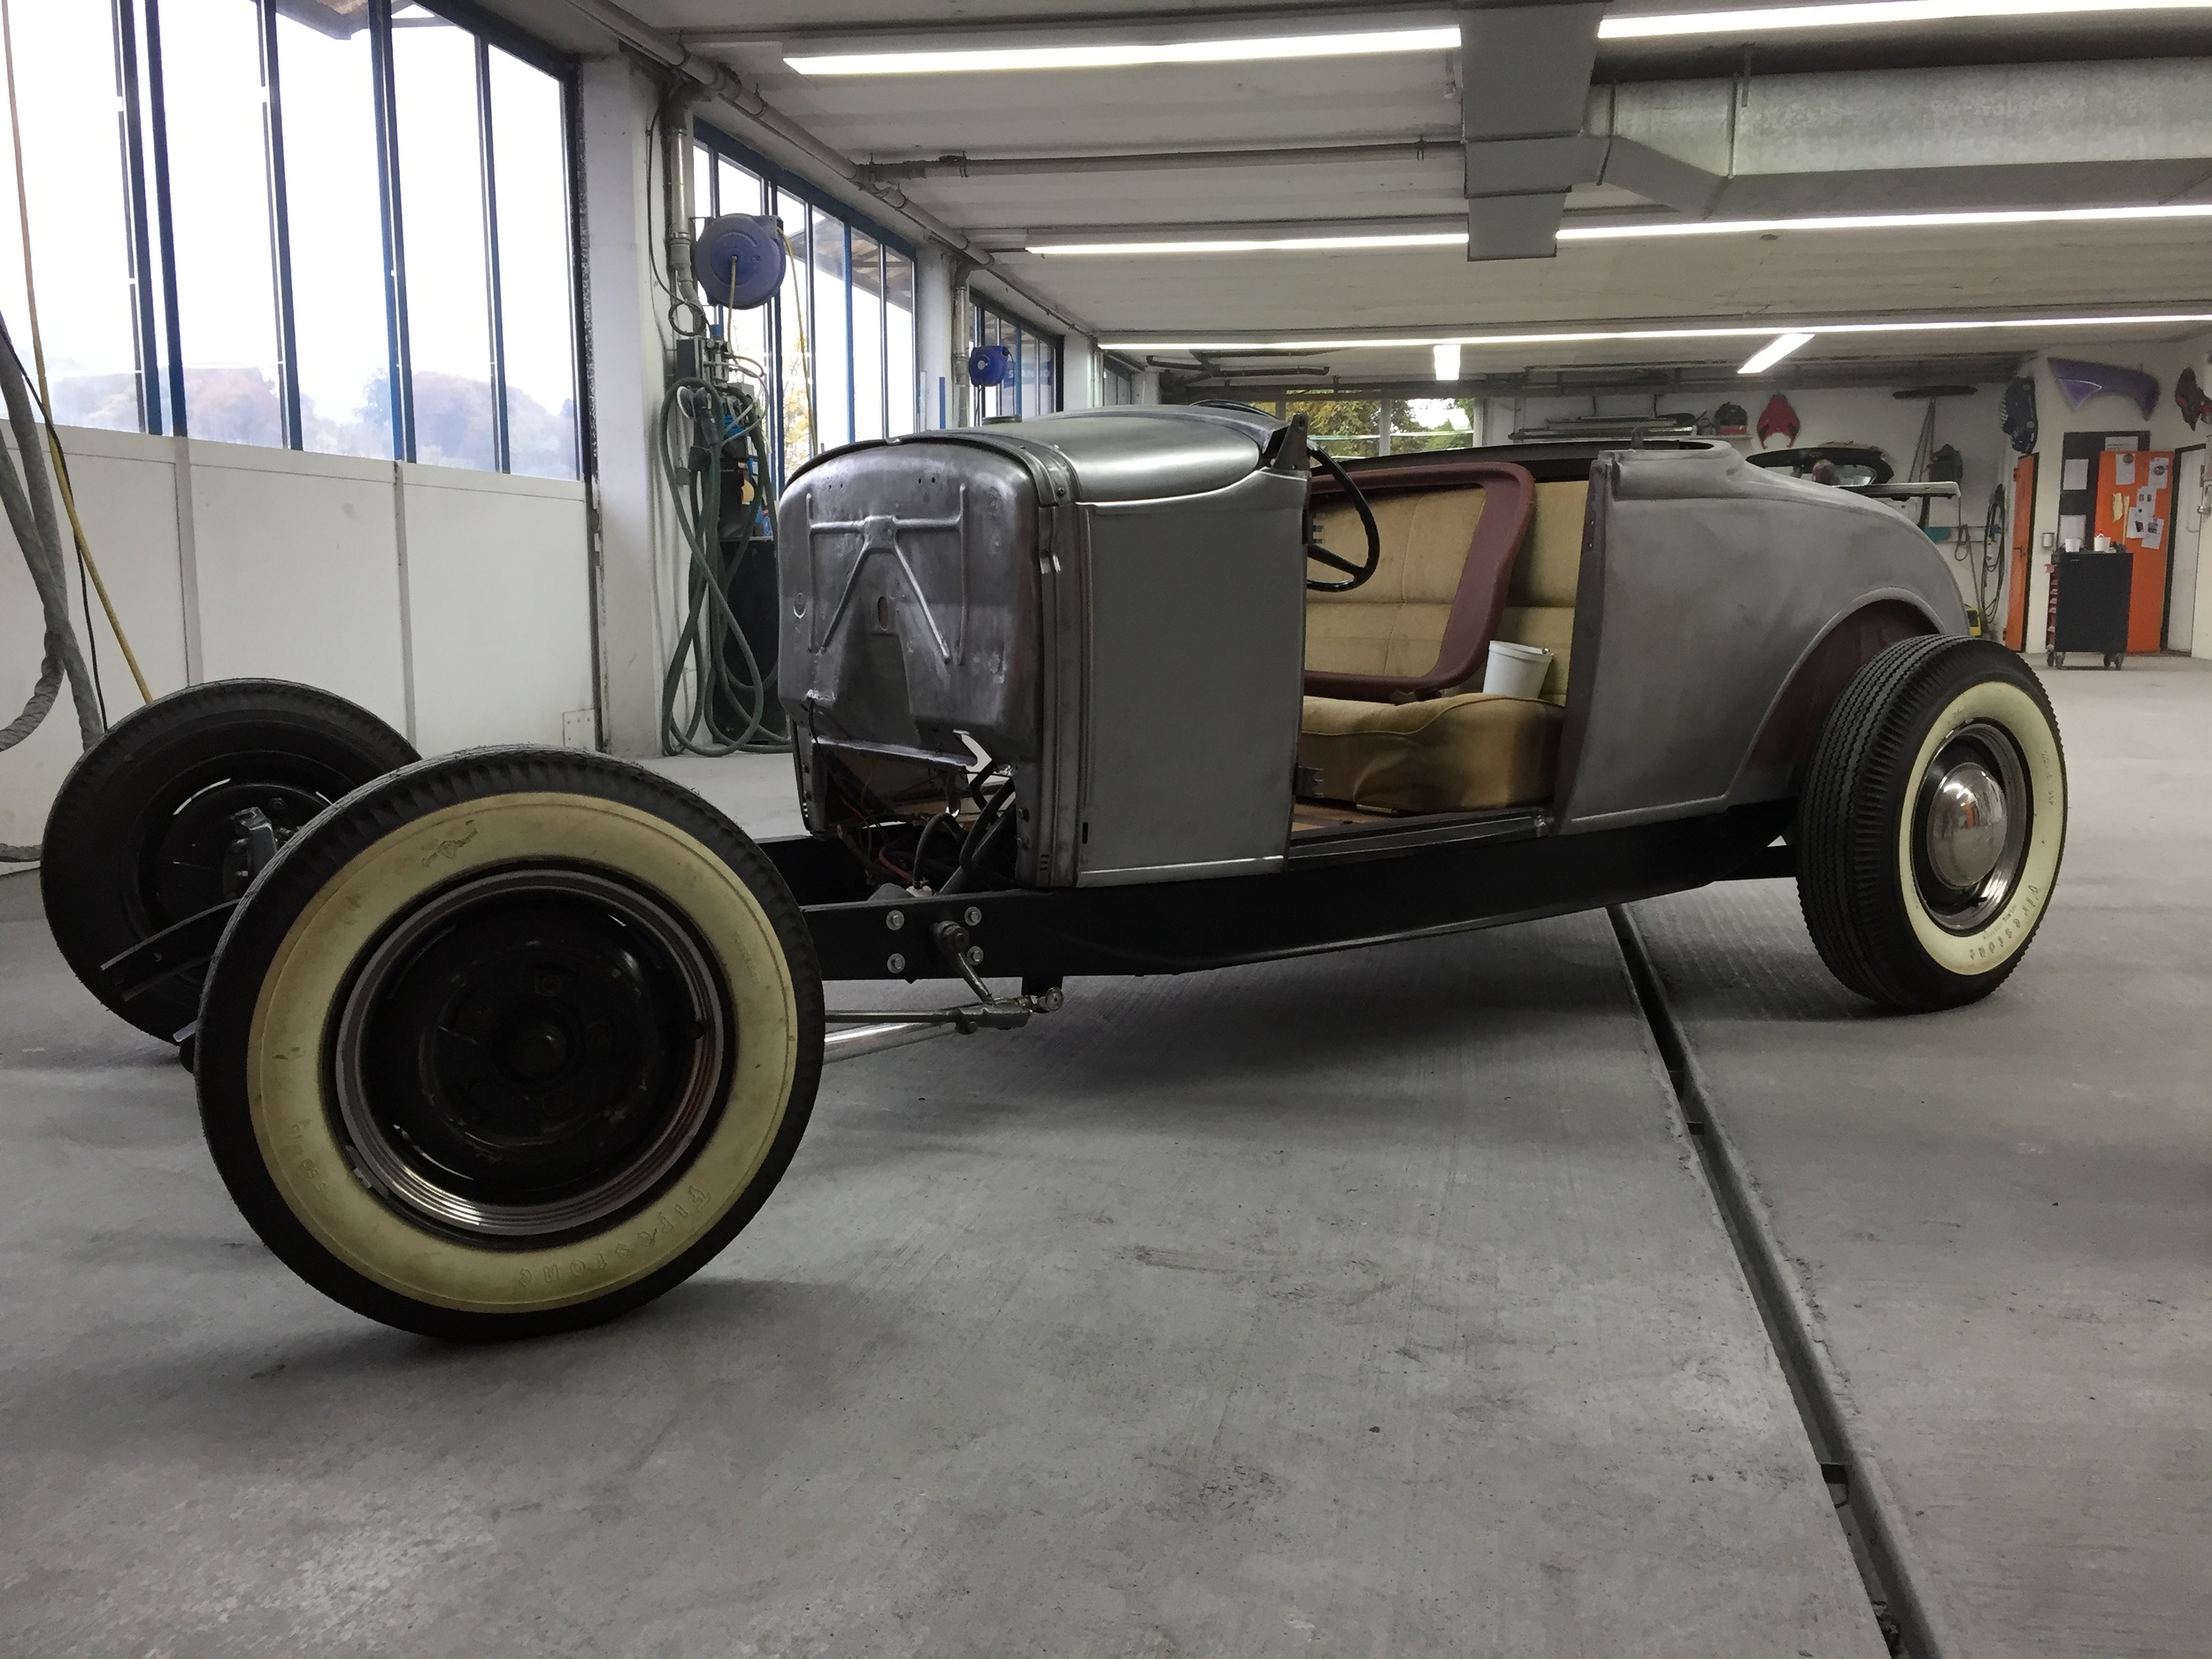 restauration carrosserie spritzwerk carriot Hot Rod Ford 1932.jpg